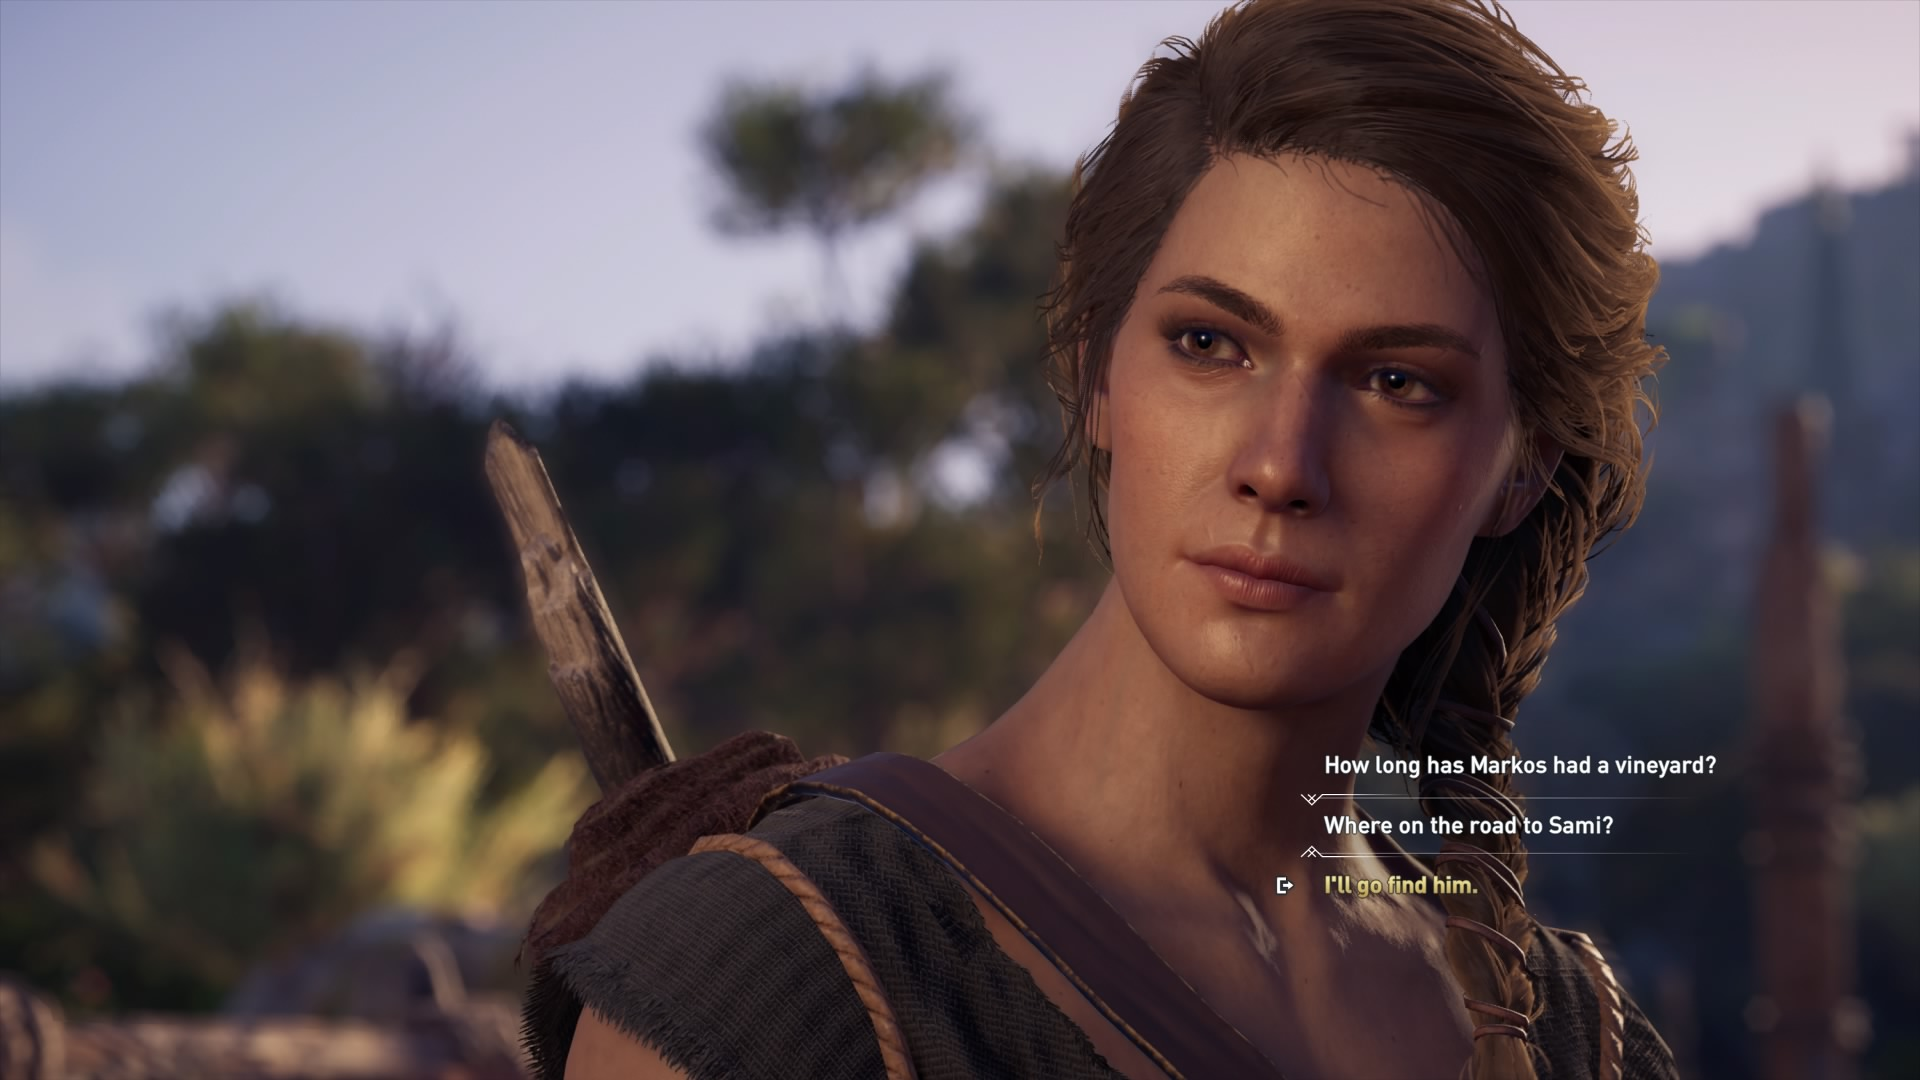 Assassin's Creed Odyssey choices